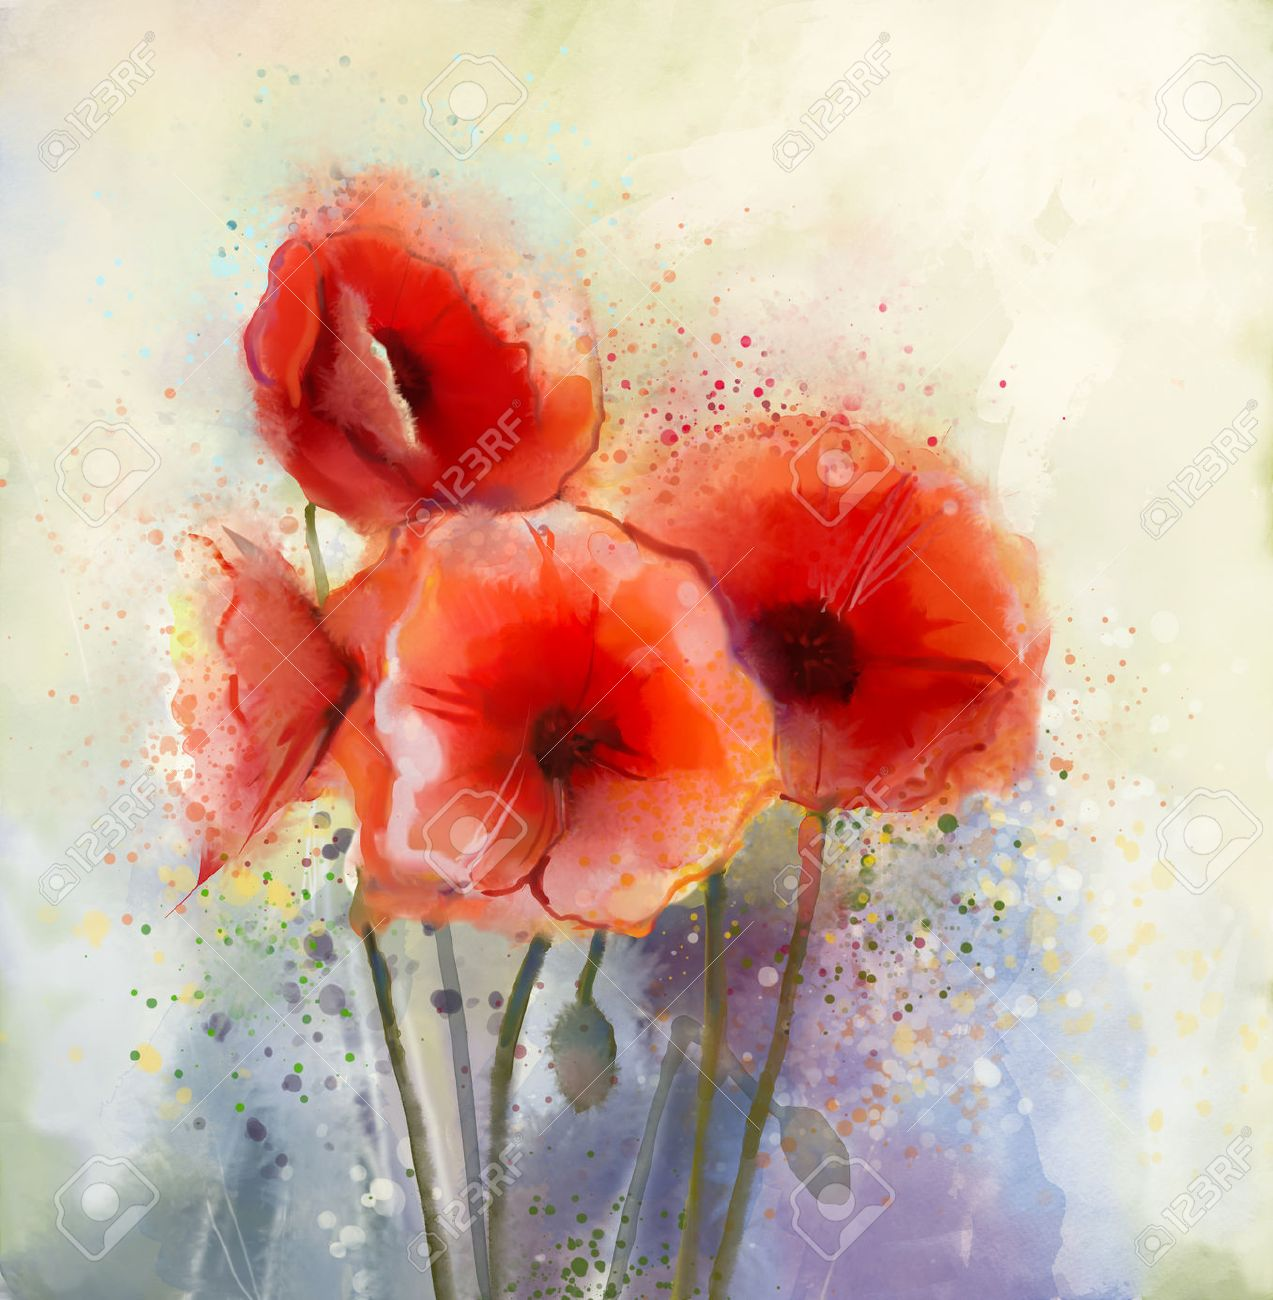 Poppy flower field at night royalty free stock photography image - Water Color Red Poppy Flowers Painting Flowers In Soft Color And Blur Style For Background